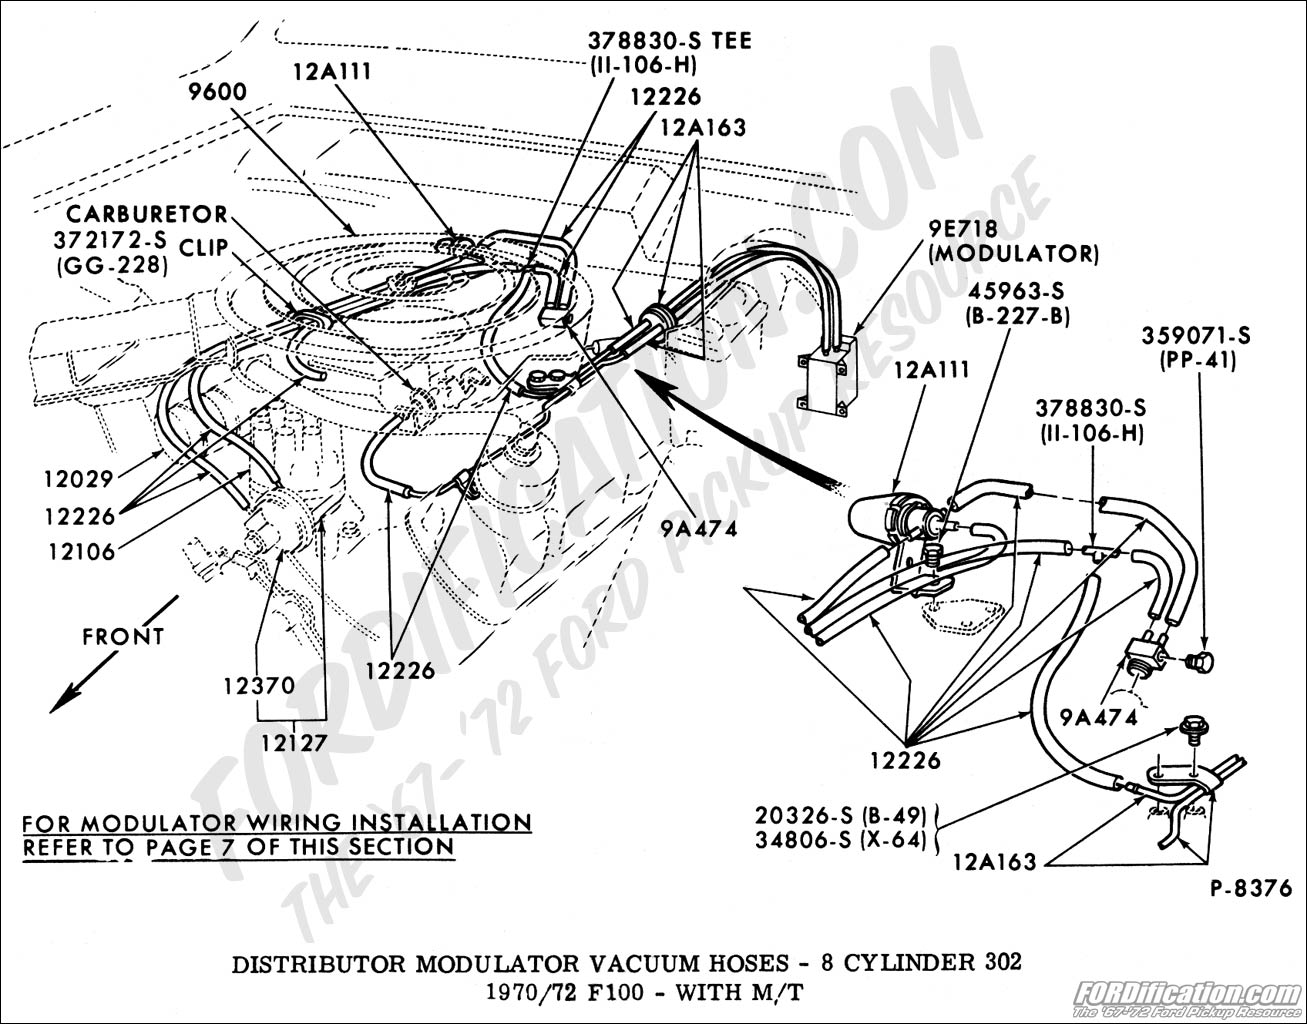 1985 mustang wiring diagram drawing wiring diagram for you • ford truck technical drawings and schematics section i 1985 mustang alternator wiring diagram 86 mustang dash